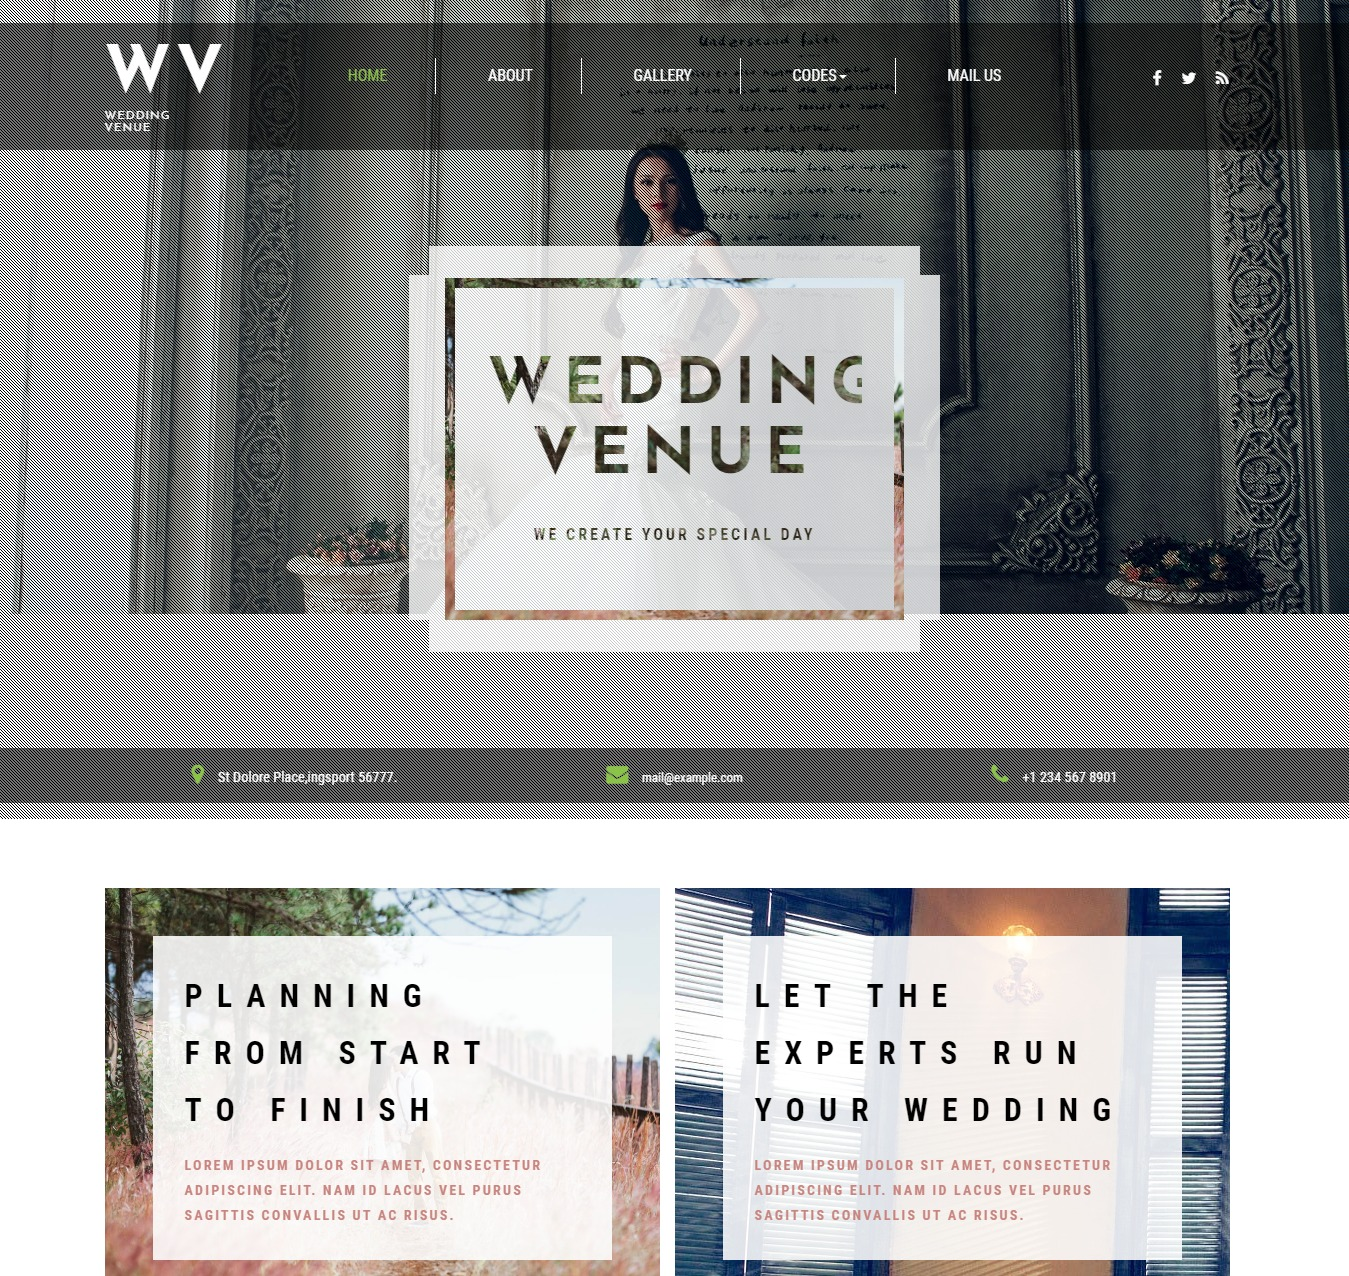 wedding-venue-free-wedding-website-template